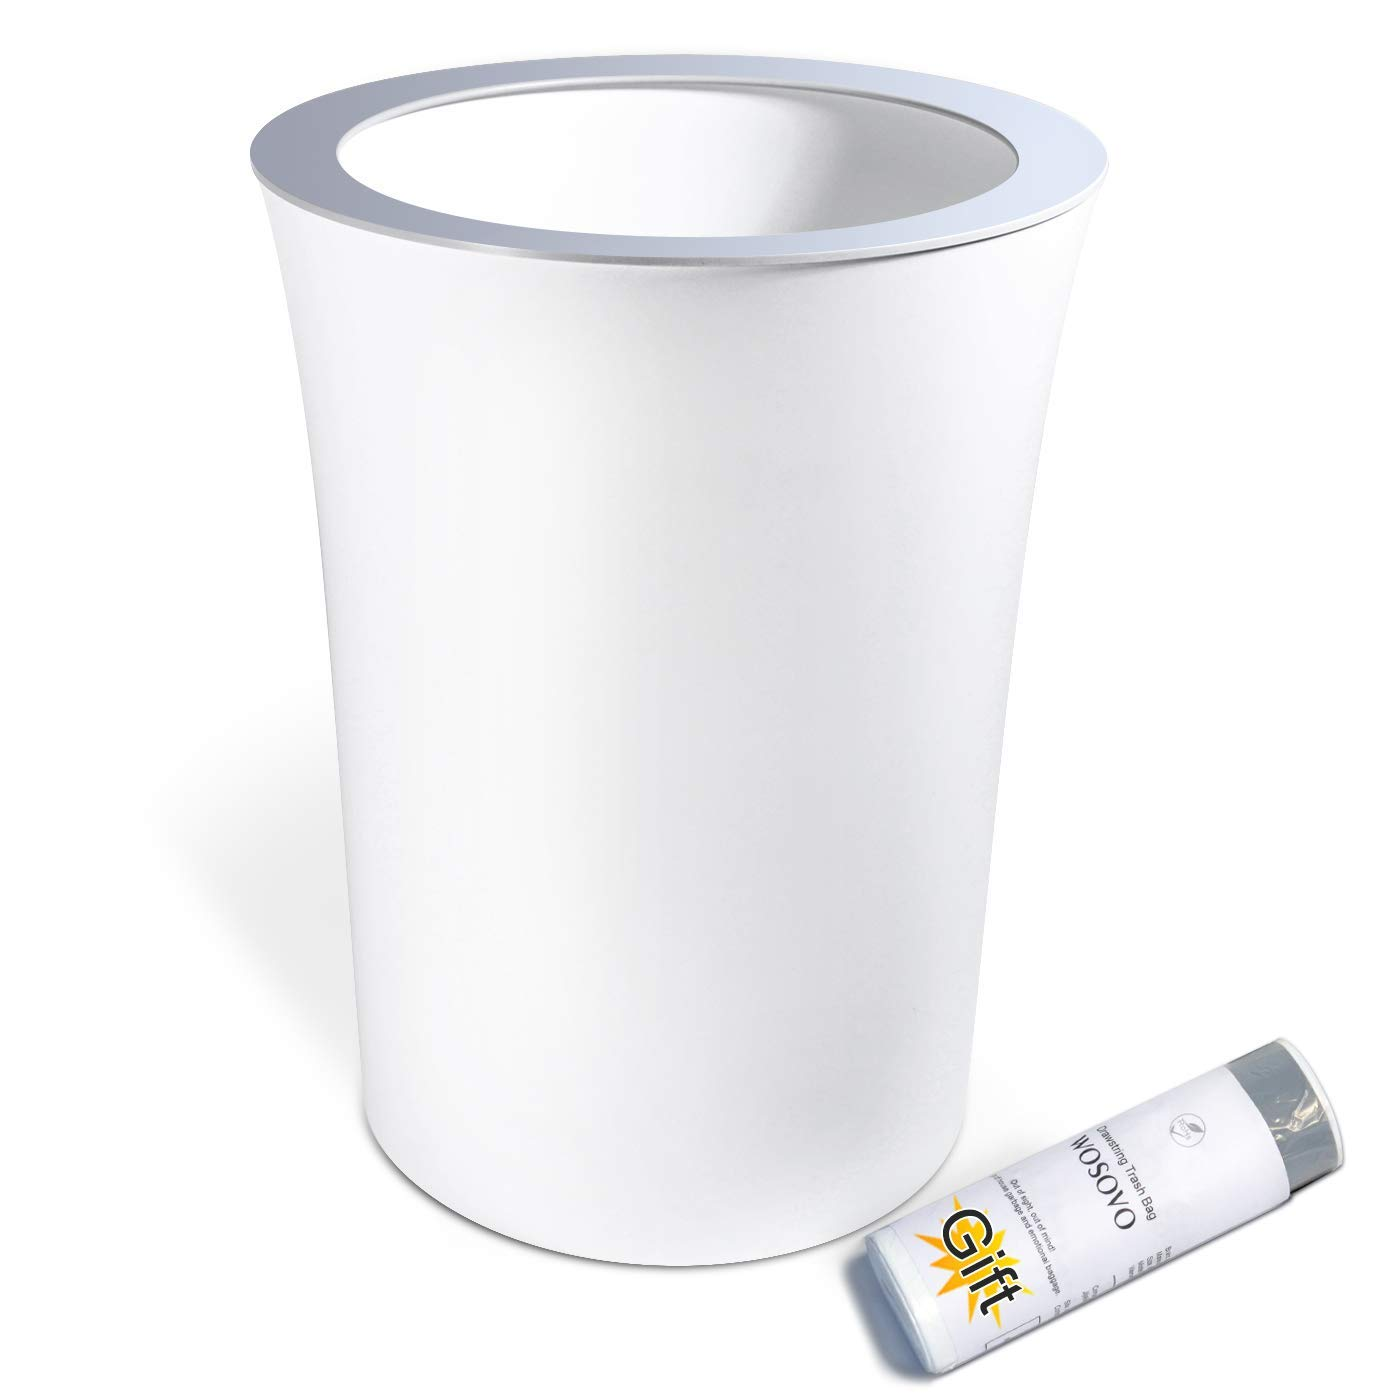 Small Trash Can White 10L/2.6 Gallon Hidden Garbage Bag, Novelty Sleek Garbage Bin Eco-friendly for Office Home Bedroom Bath Kitchen, Modern Wastebasket Plastic Round with Drawstring Trash Bags